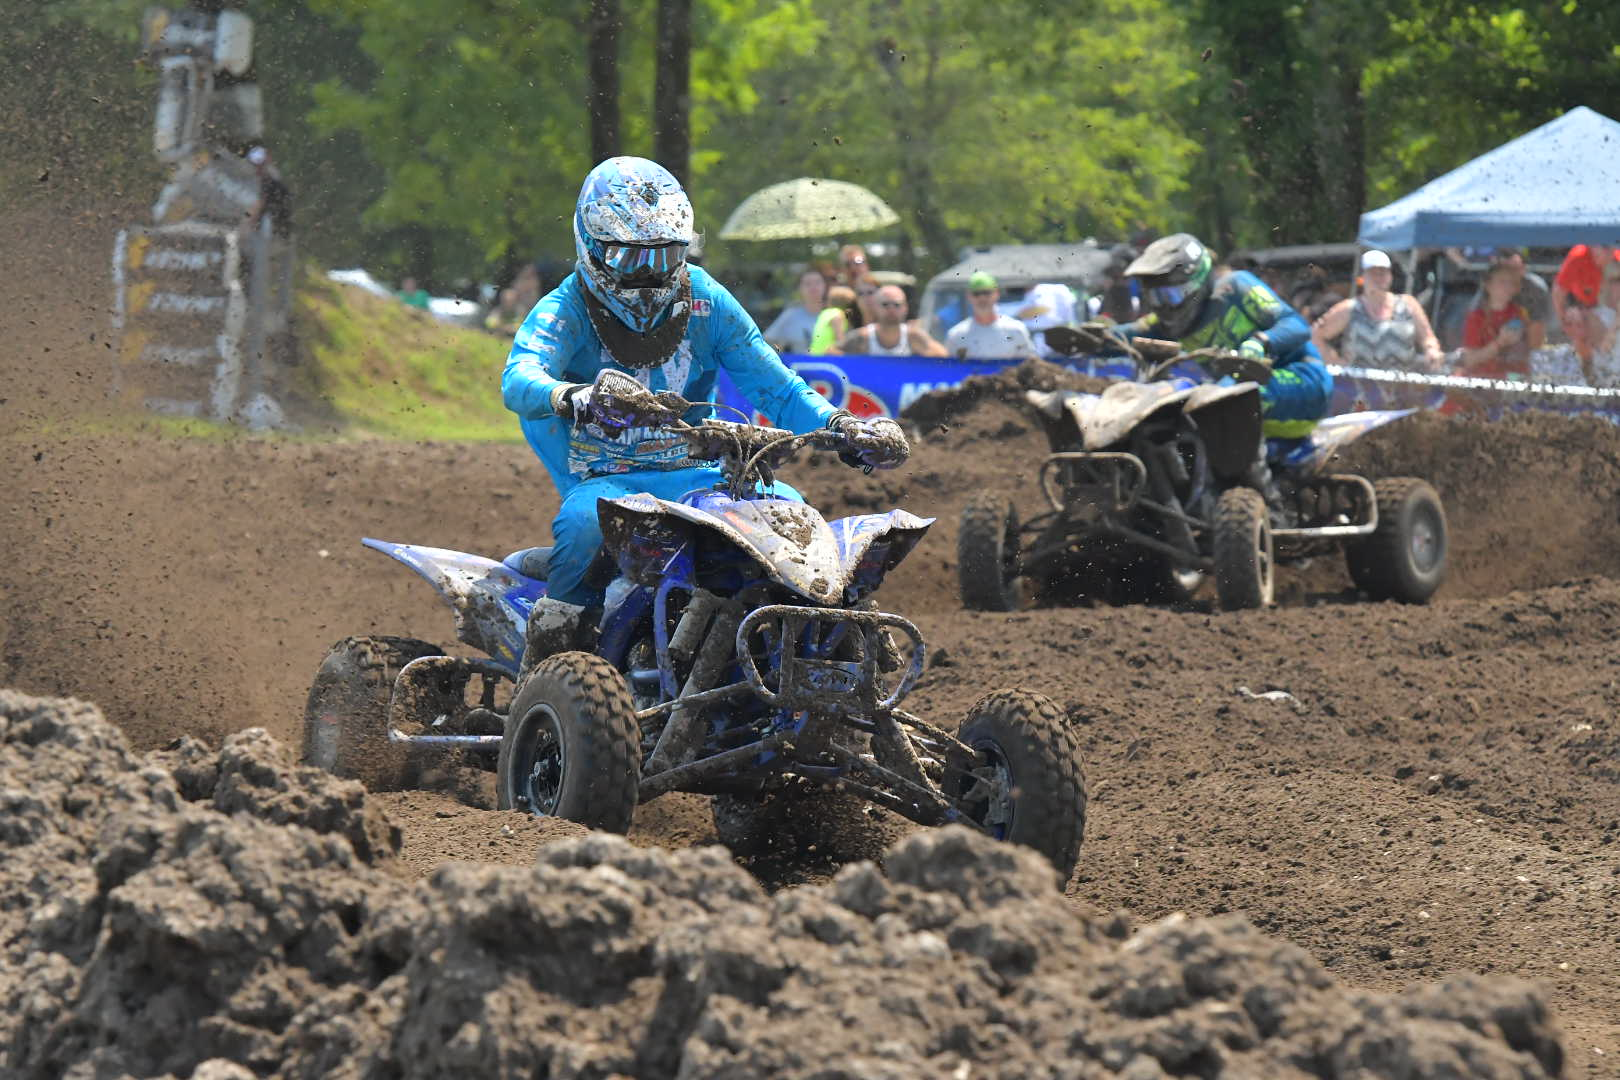 Wienen bested the competition with Yamaha's race-proven YFZ450R sport ATV